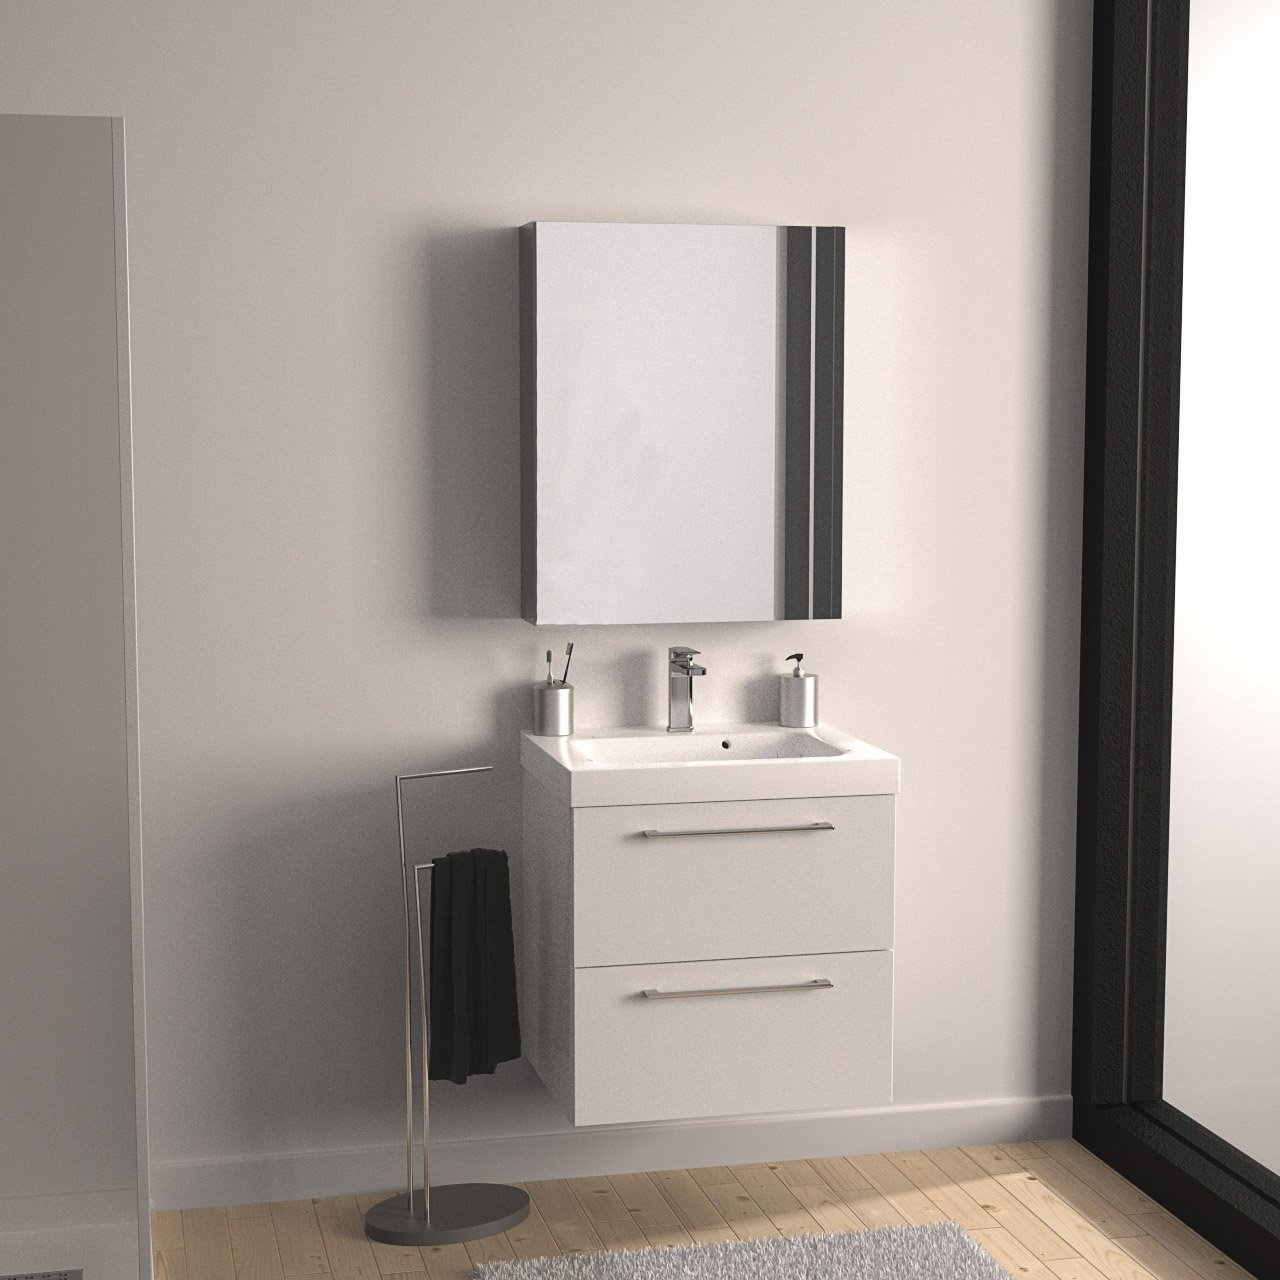 meuble vasque 61 cm blanc remix leroy merlin. Black Bedroom Furniture Sets. Home Design Ideas